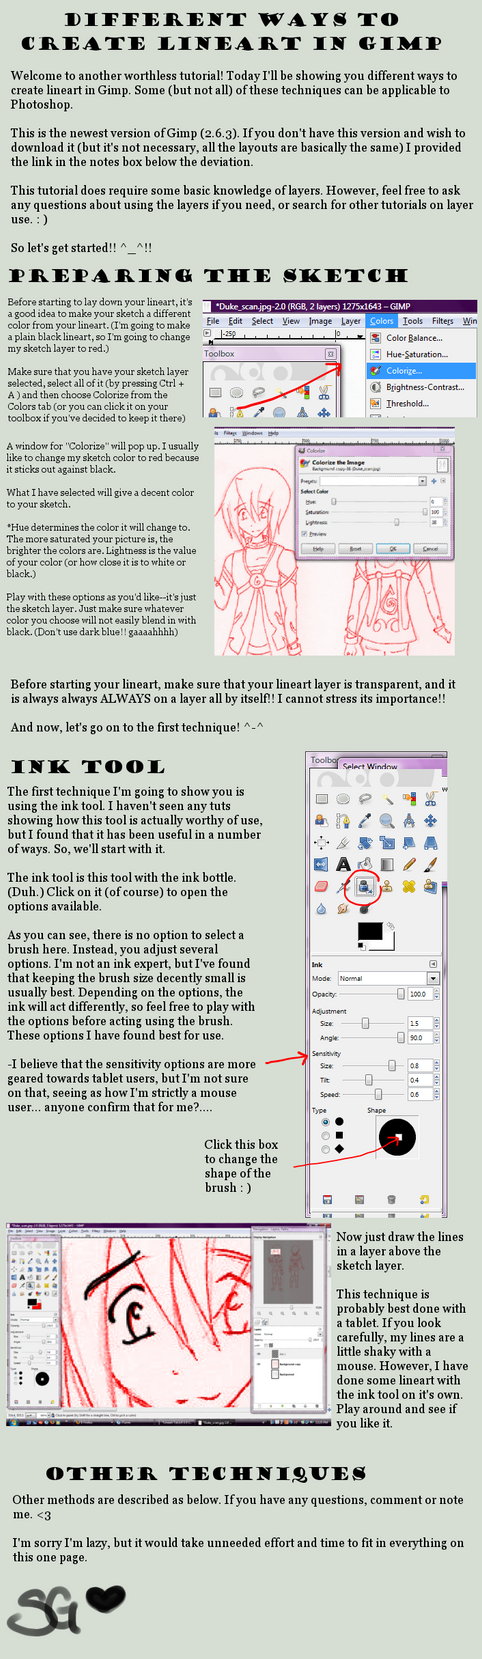 Line Drawing Gimp : Lineart guide for gimp by shimagenki on deviantart